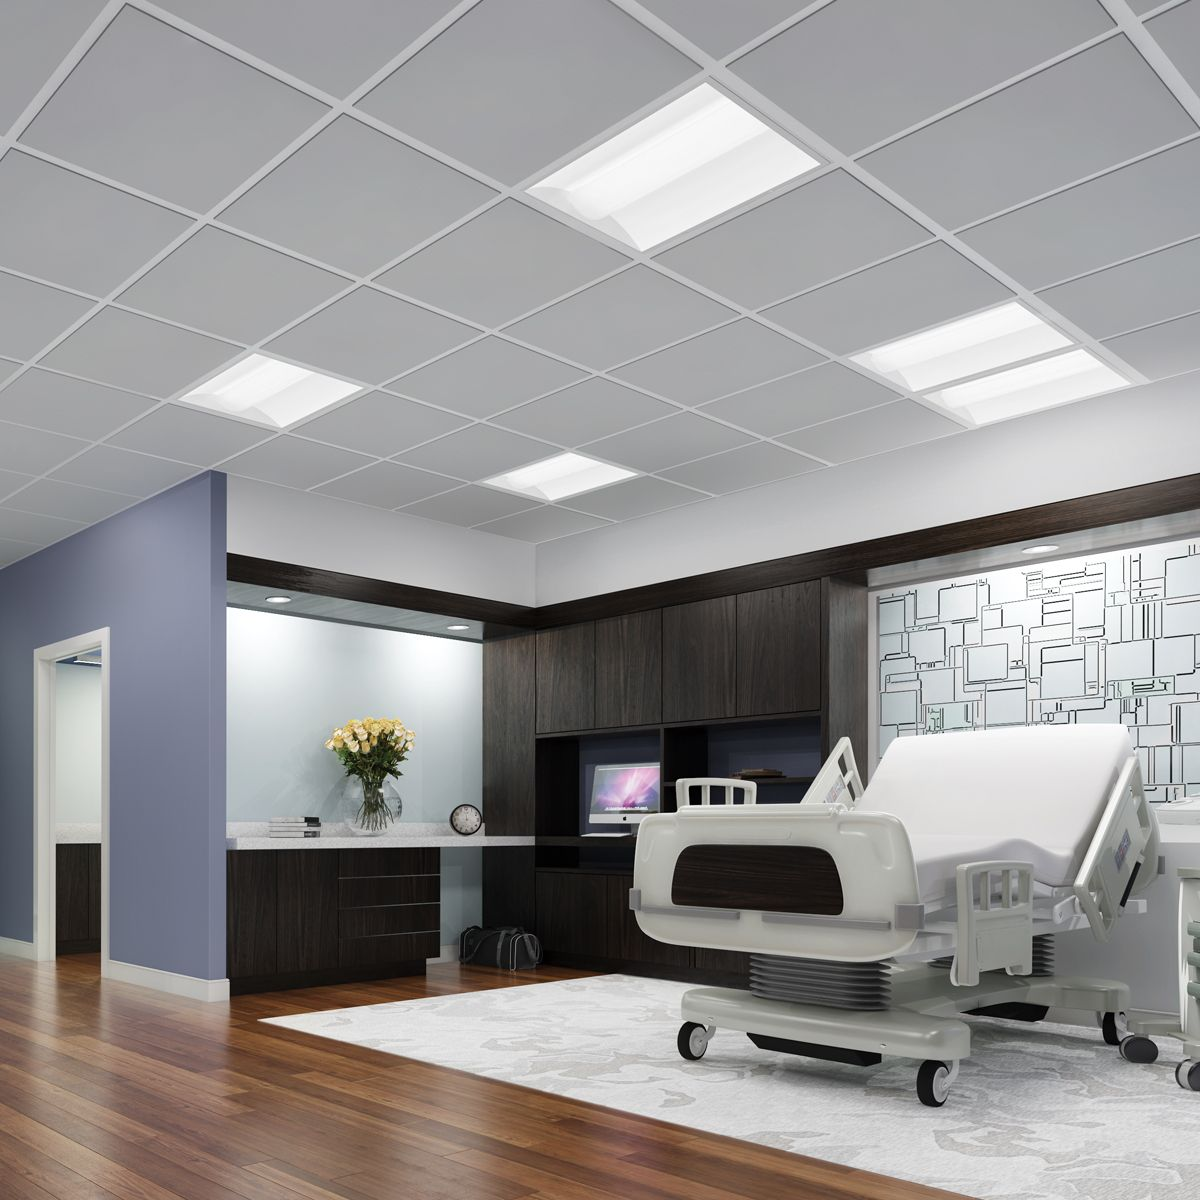 Affordable LED Lighting For Healthcare. Metalux Cruze. Installation  Flexibility As Well!